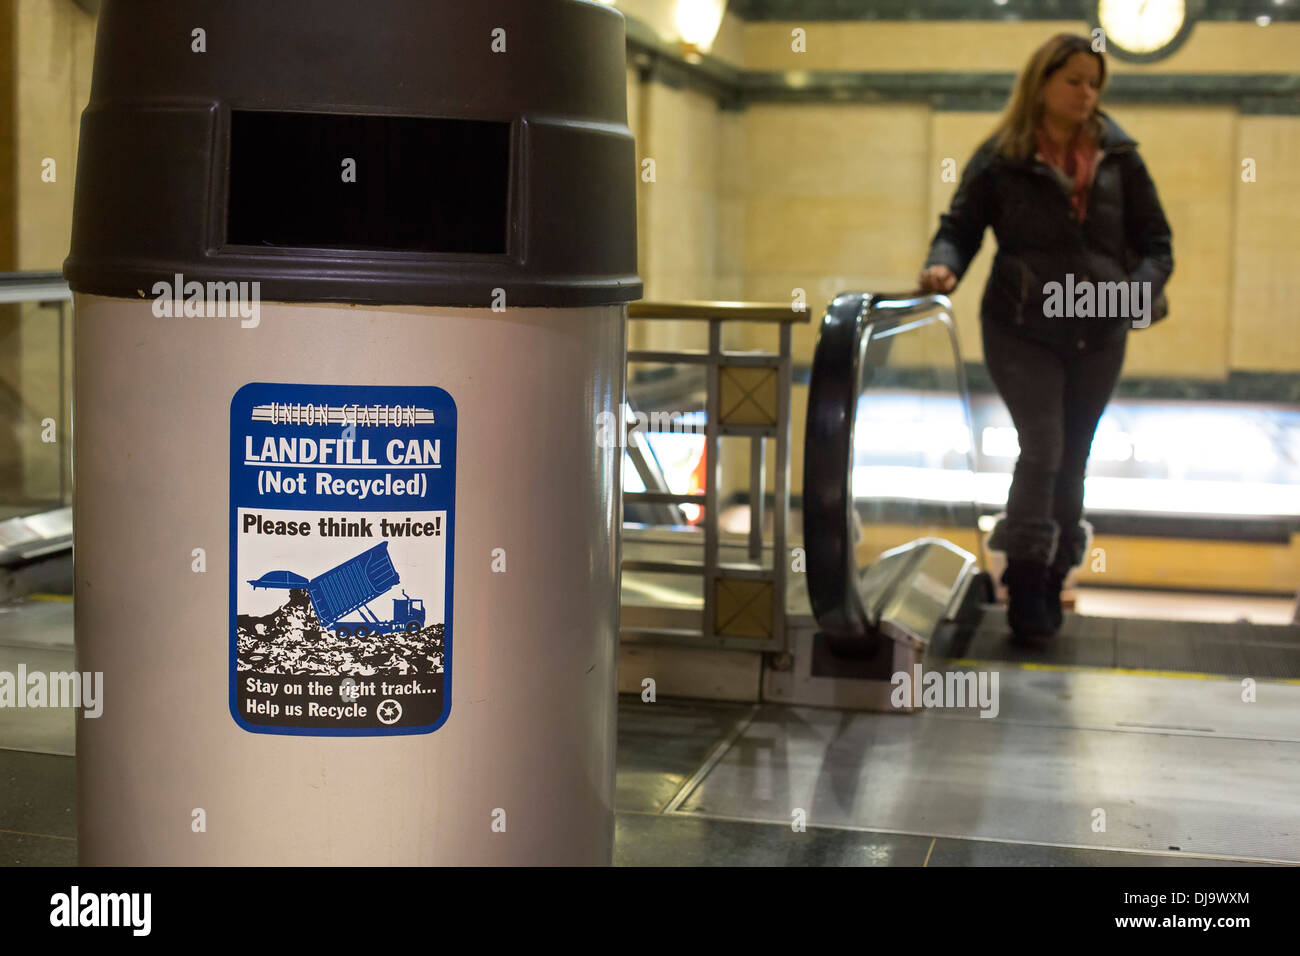 Chicago, Illinois - A sign on a trash can at Union Station urges recycling. - Stock Image